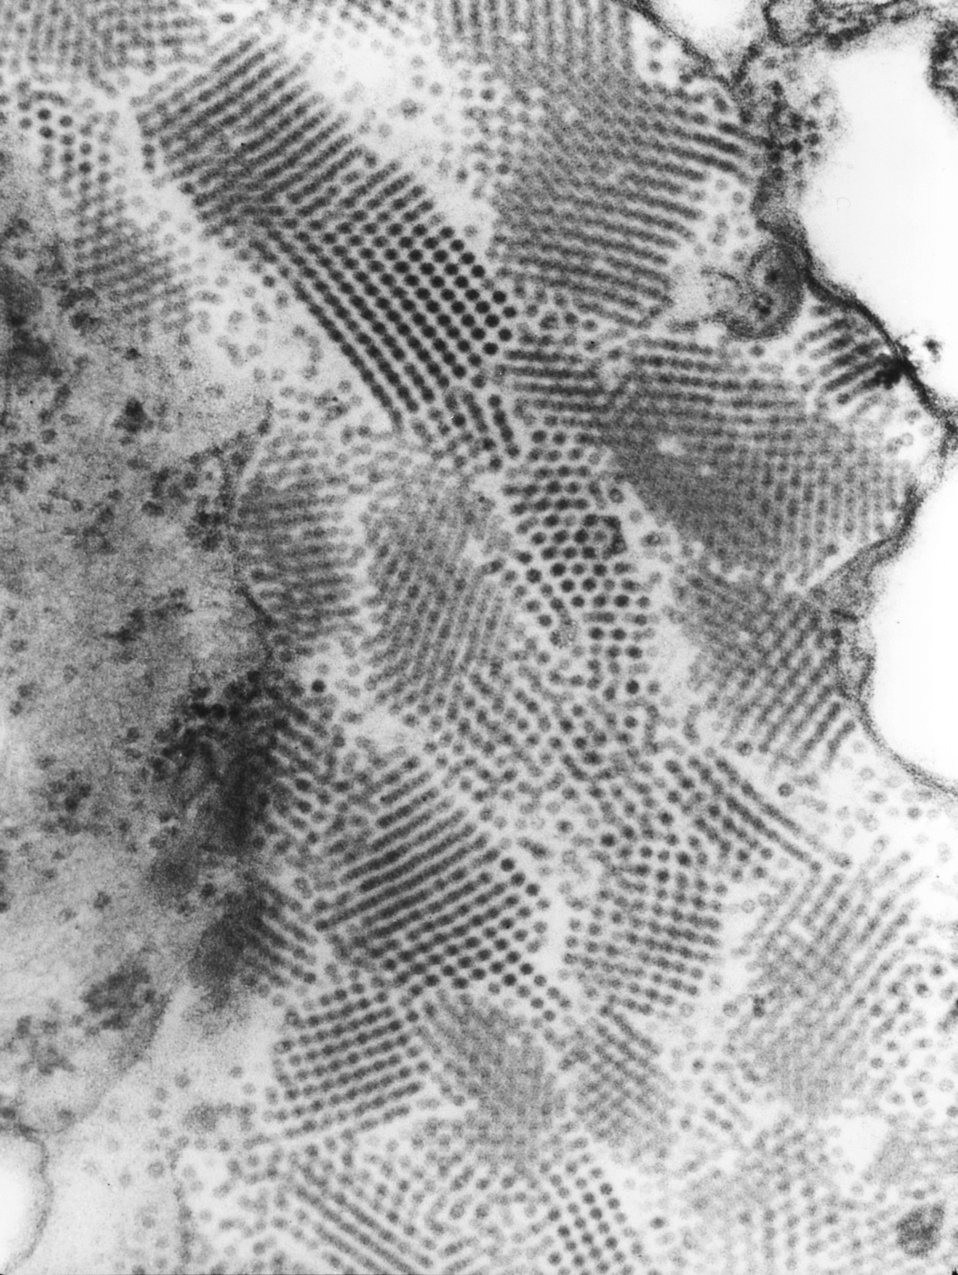 This transmission electron micrograph (TEM) revealed the presence of numbers of Nodamura virus virions.  At its core, the Nodamura virus pos